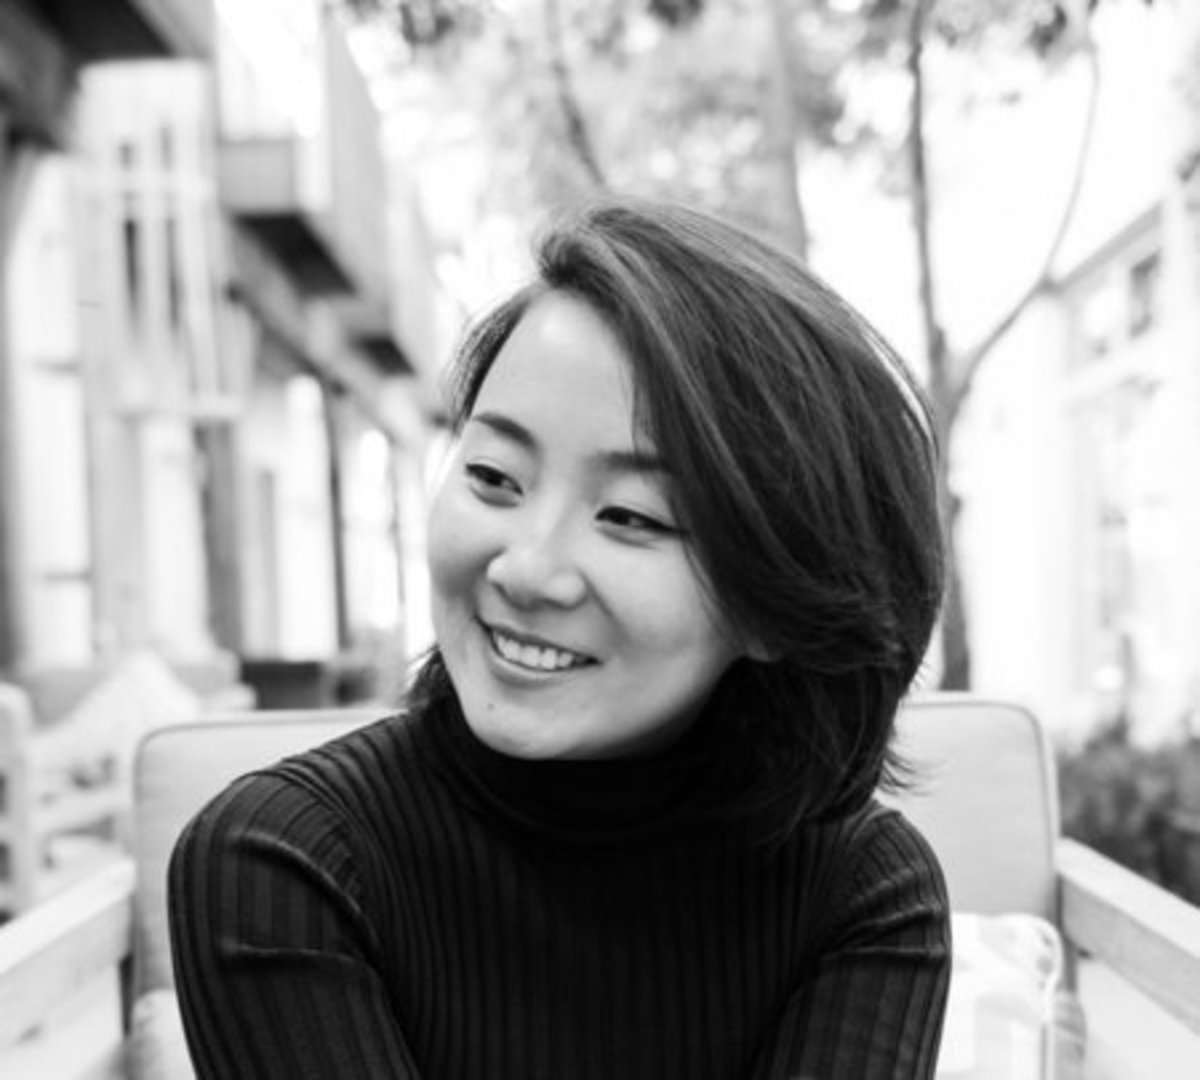 Marie Lu, the book's author